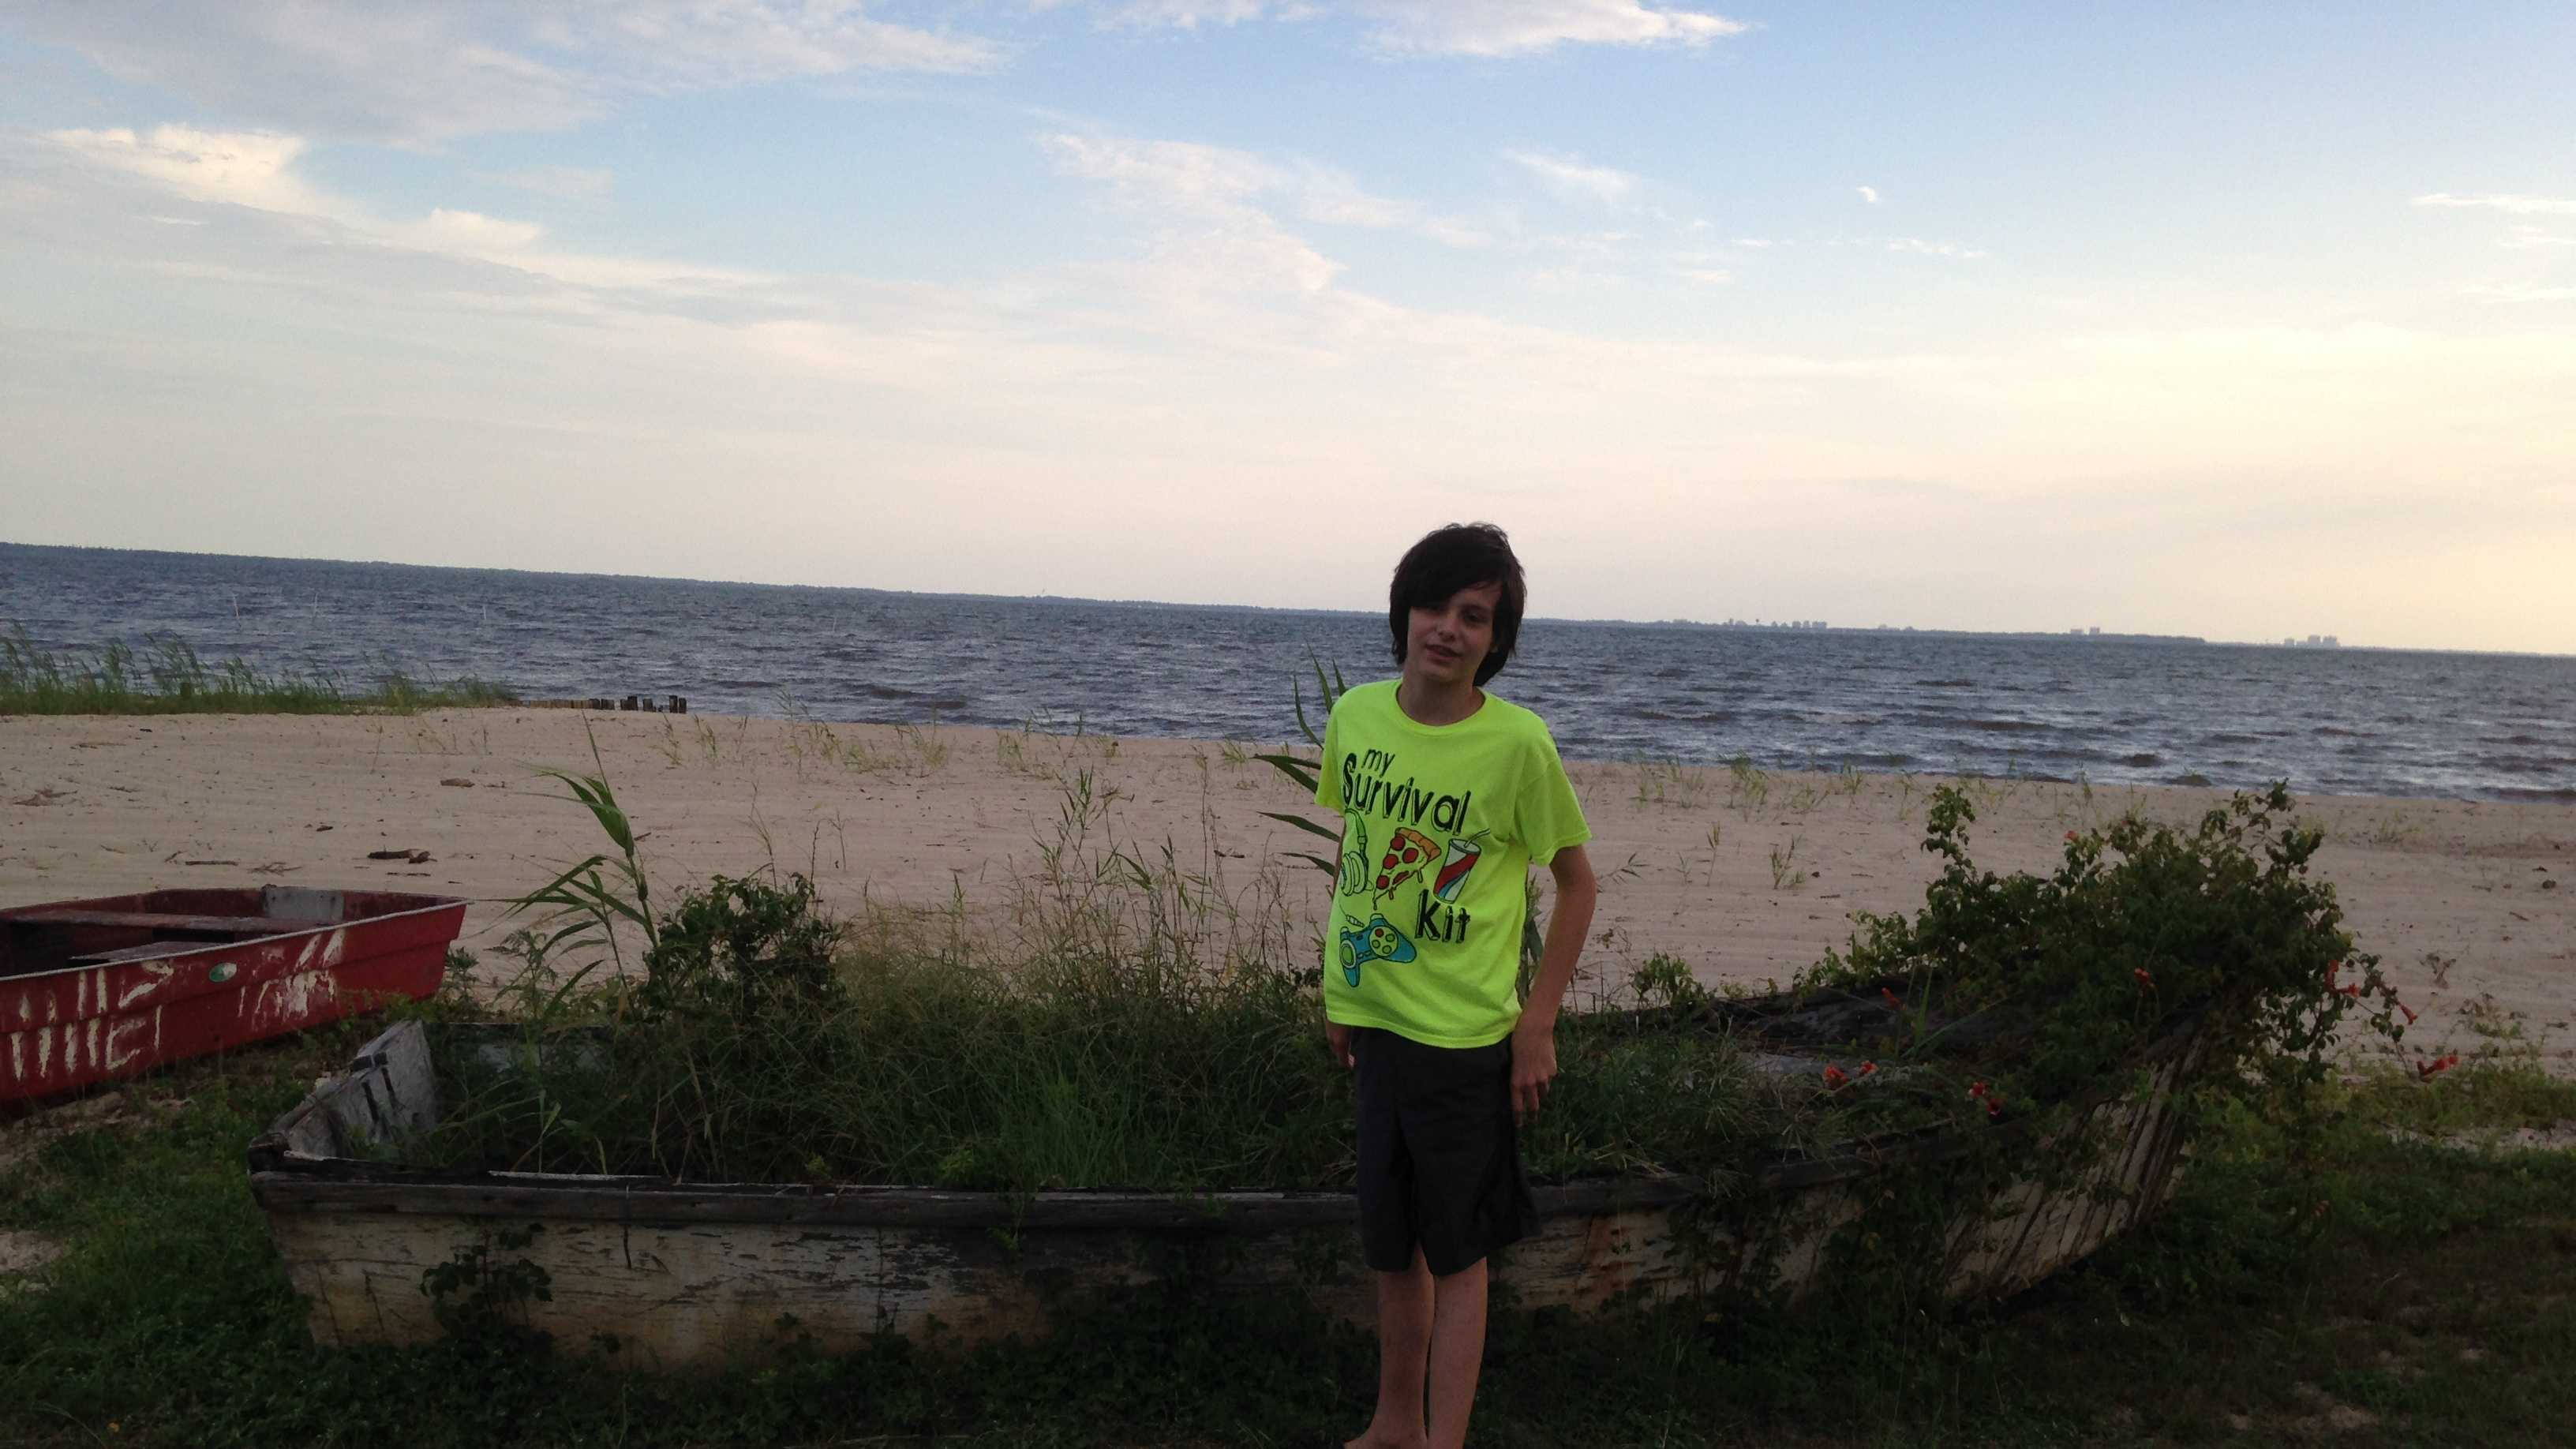 Jefferson Parish authorities searching for John Elrod, a missing 11-year-old boy from Gretna. He was last seen at about 6:30 a.m. Wednesday morning.